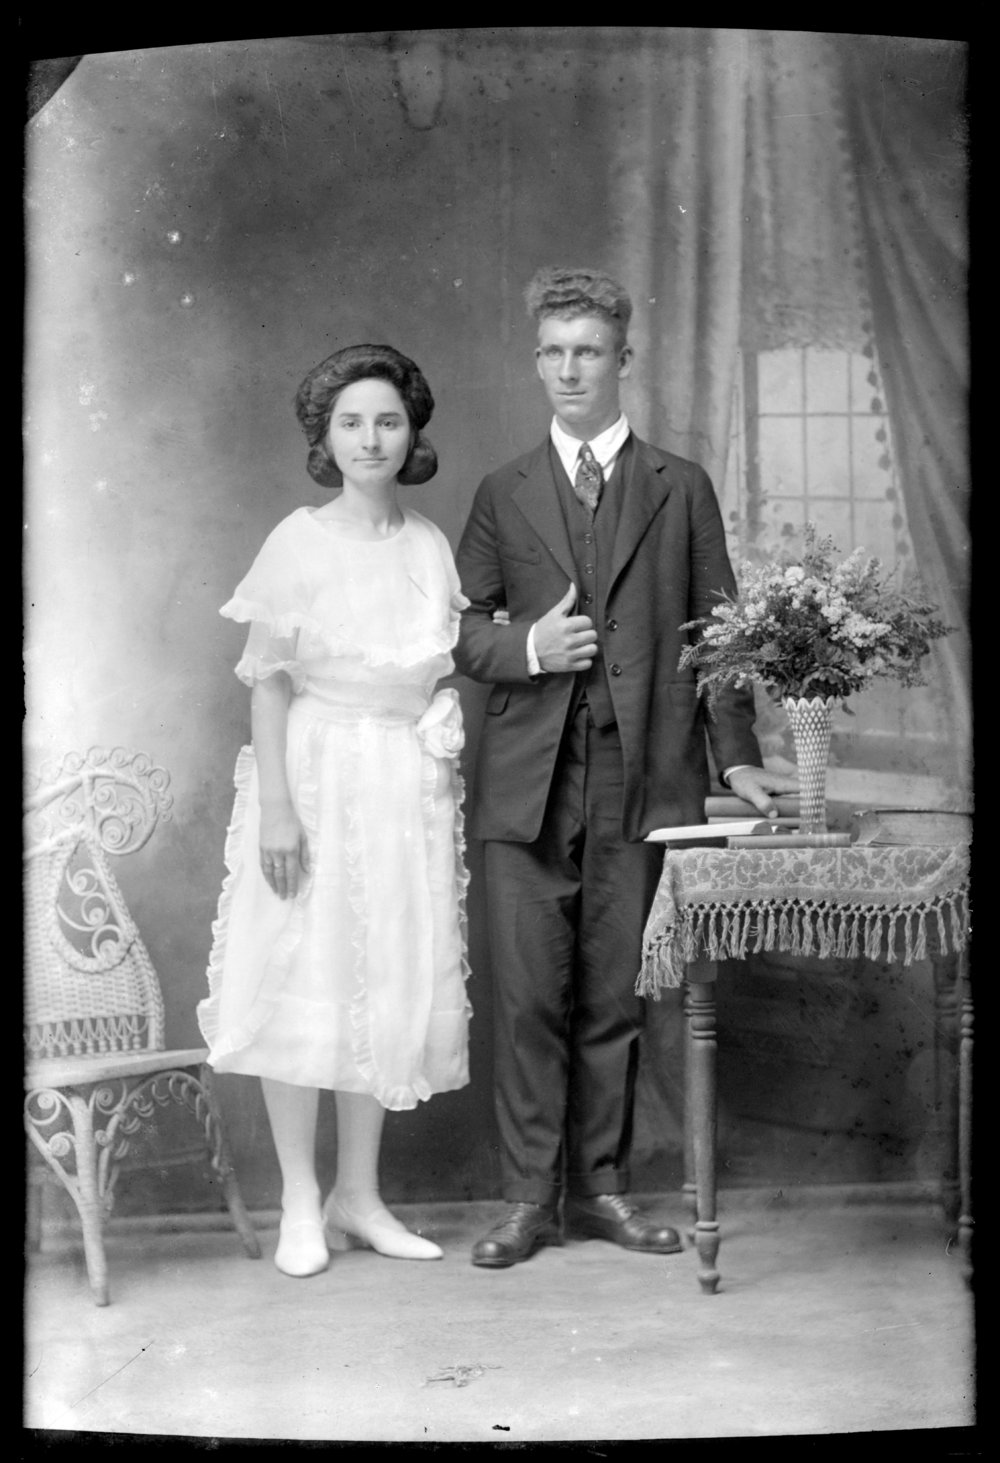 Michael A. Kennedy photo collection, St. Paul, Kansas - Wedding portrait of Emil Kennedy Sr. and Anna Elizabeth (Wagner) Kennedy, 1925